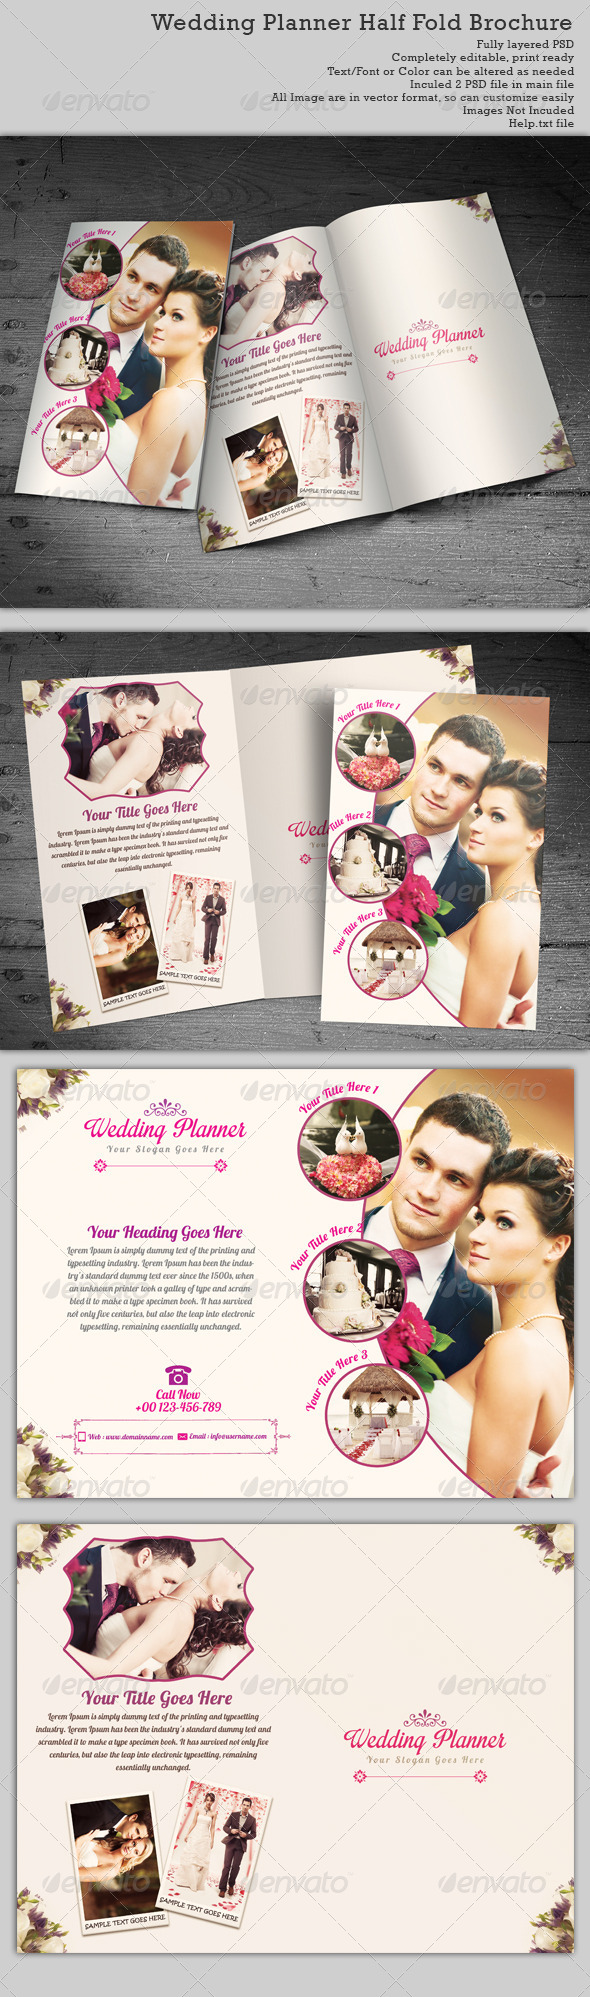 Wedding planner half fold brochure templates by for Wedding planner brochure template